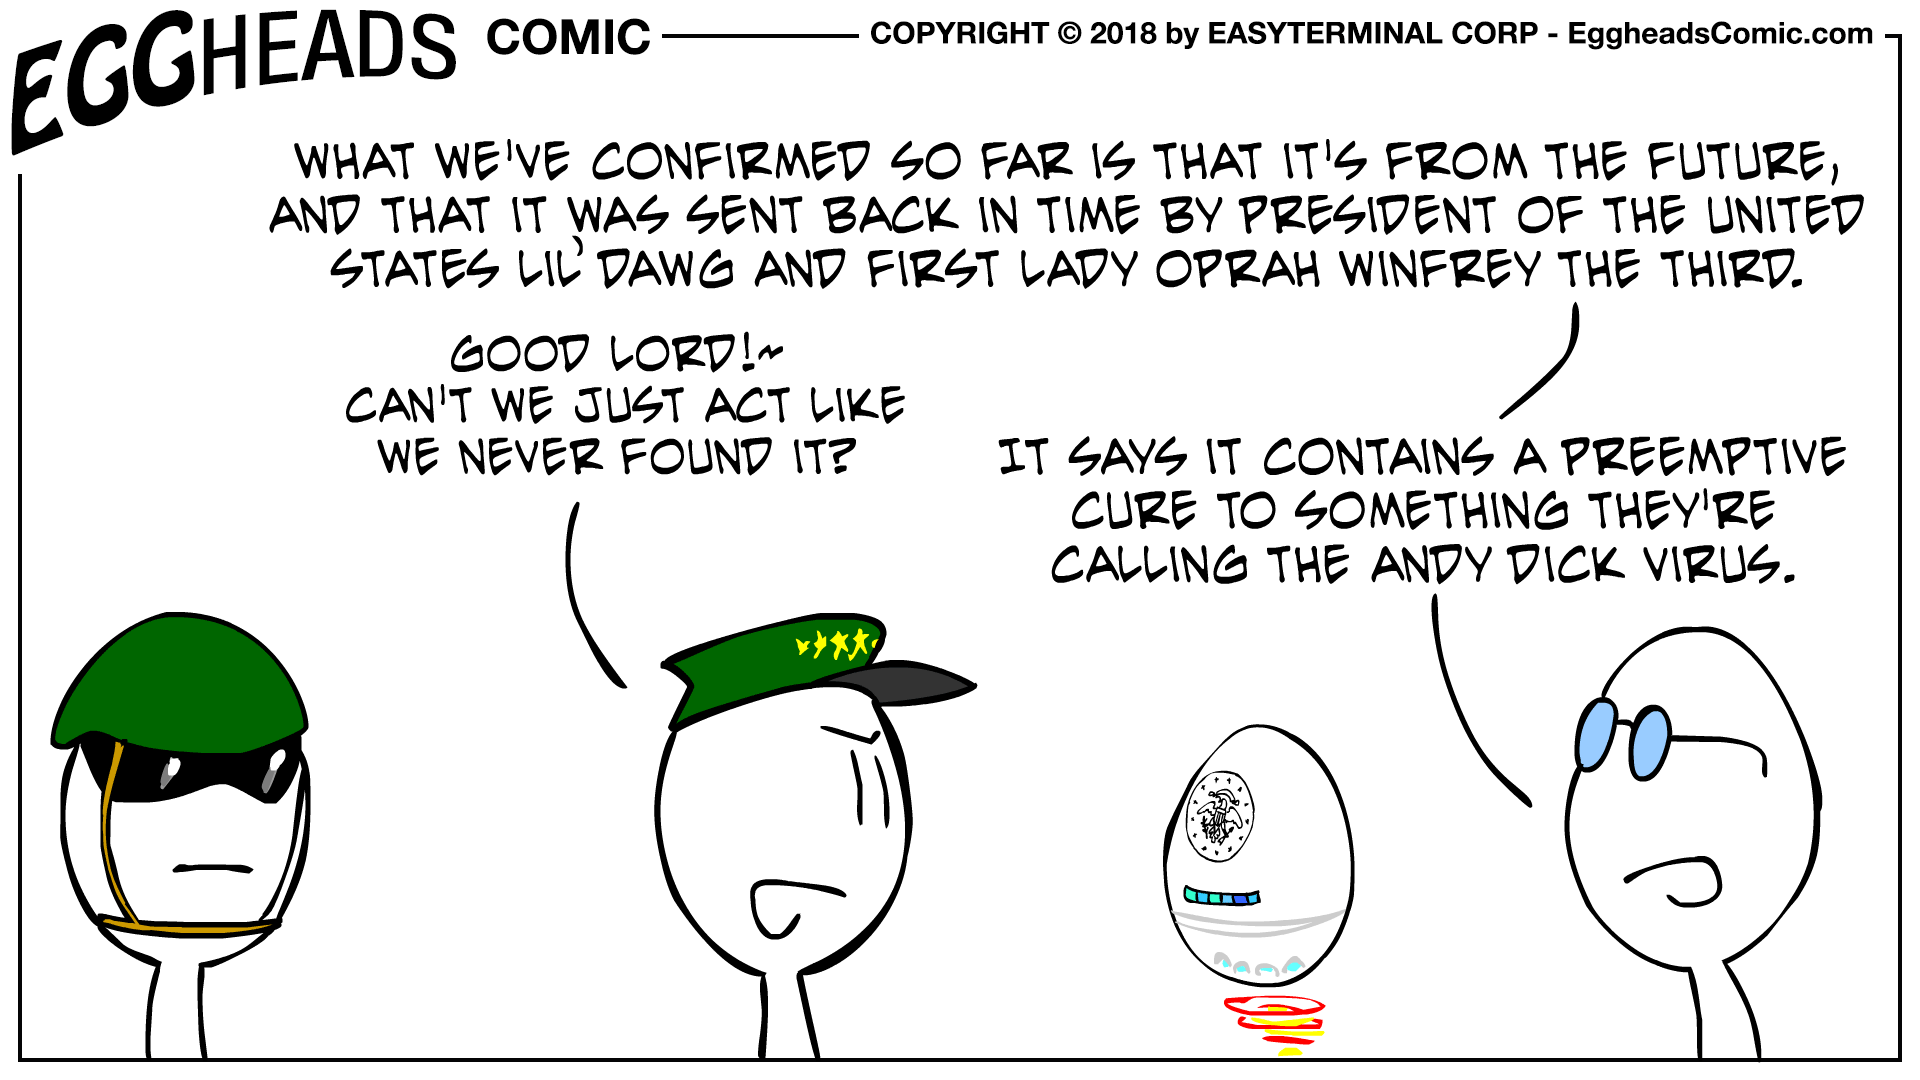 Eggheads Comic Strip 087 From The Future